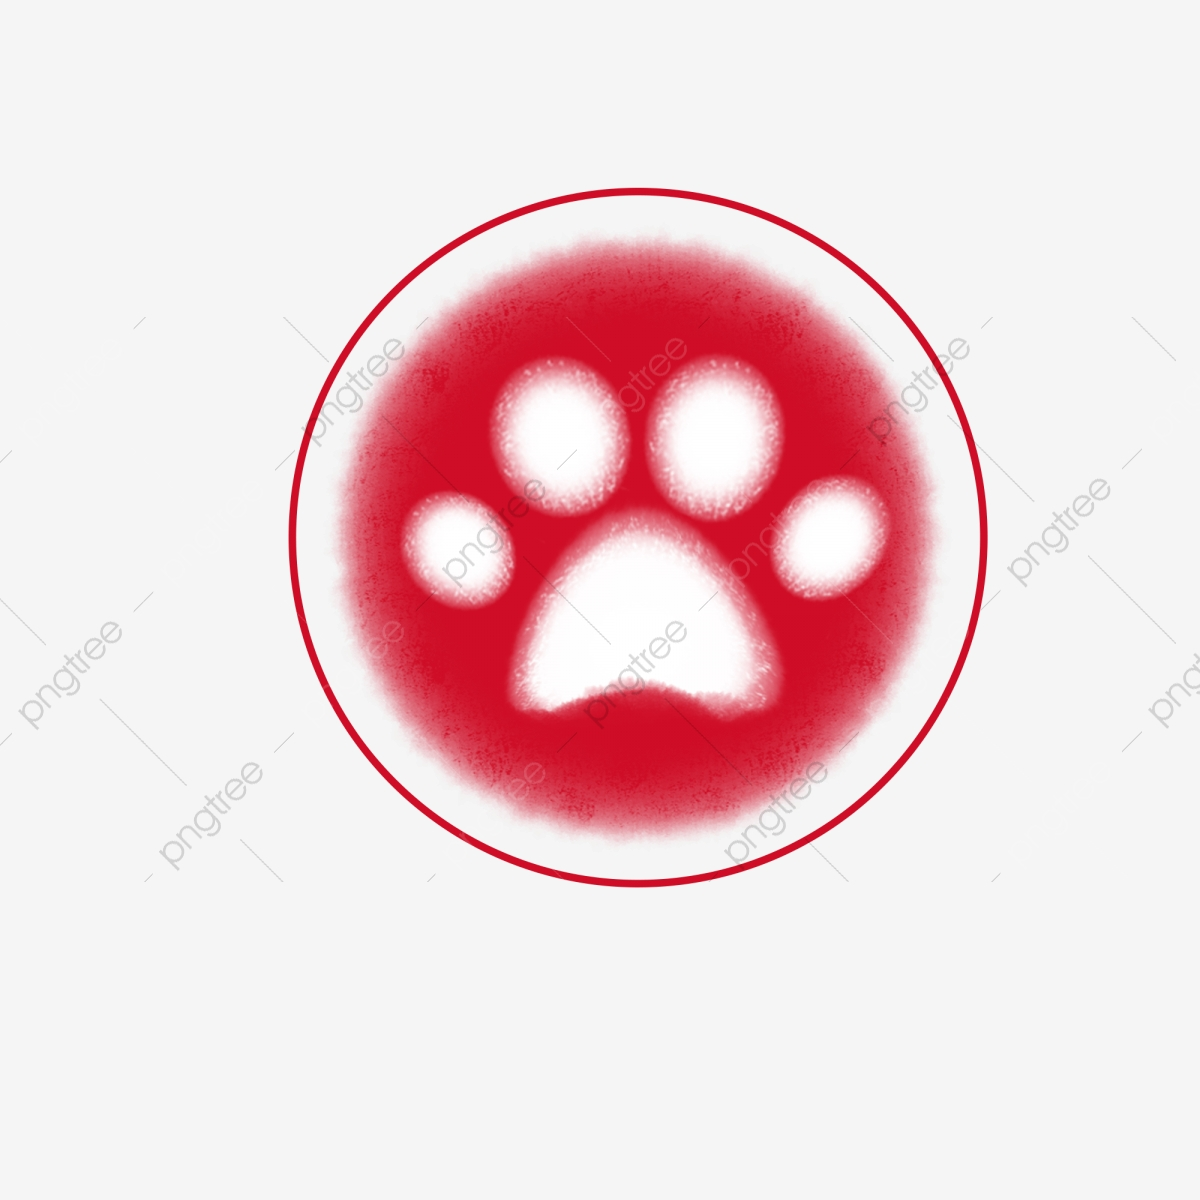 Red Pet Paw Print Seal Decorative Pattern 4 Dog Paw Clipart Seal Animal Paw Print Png Transparent Clipart Image And Psd File For Free Download Download the free graphic resources in the form of png, eps, ai or psd. https pngtree com freepng red pet paw print seal decorative pattern 4 4020158 html